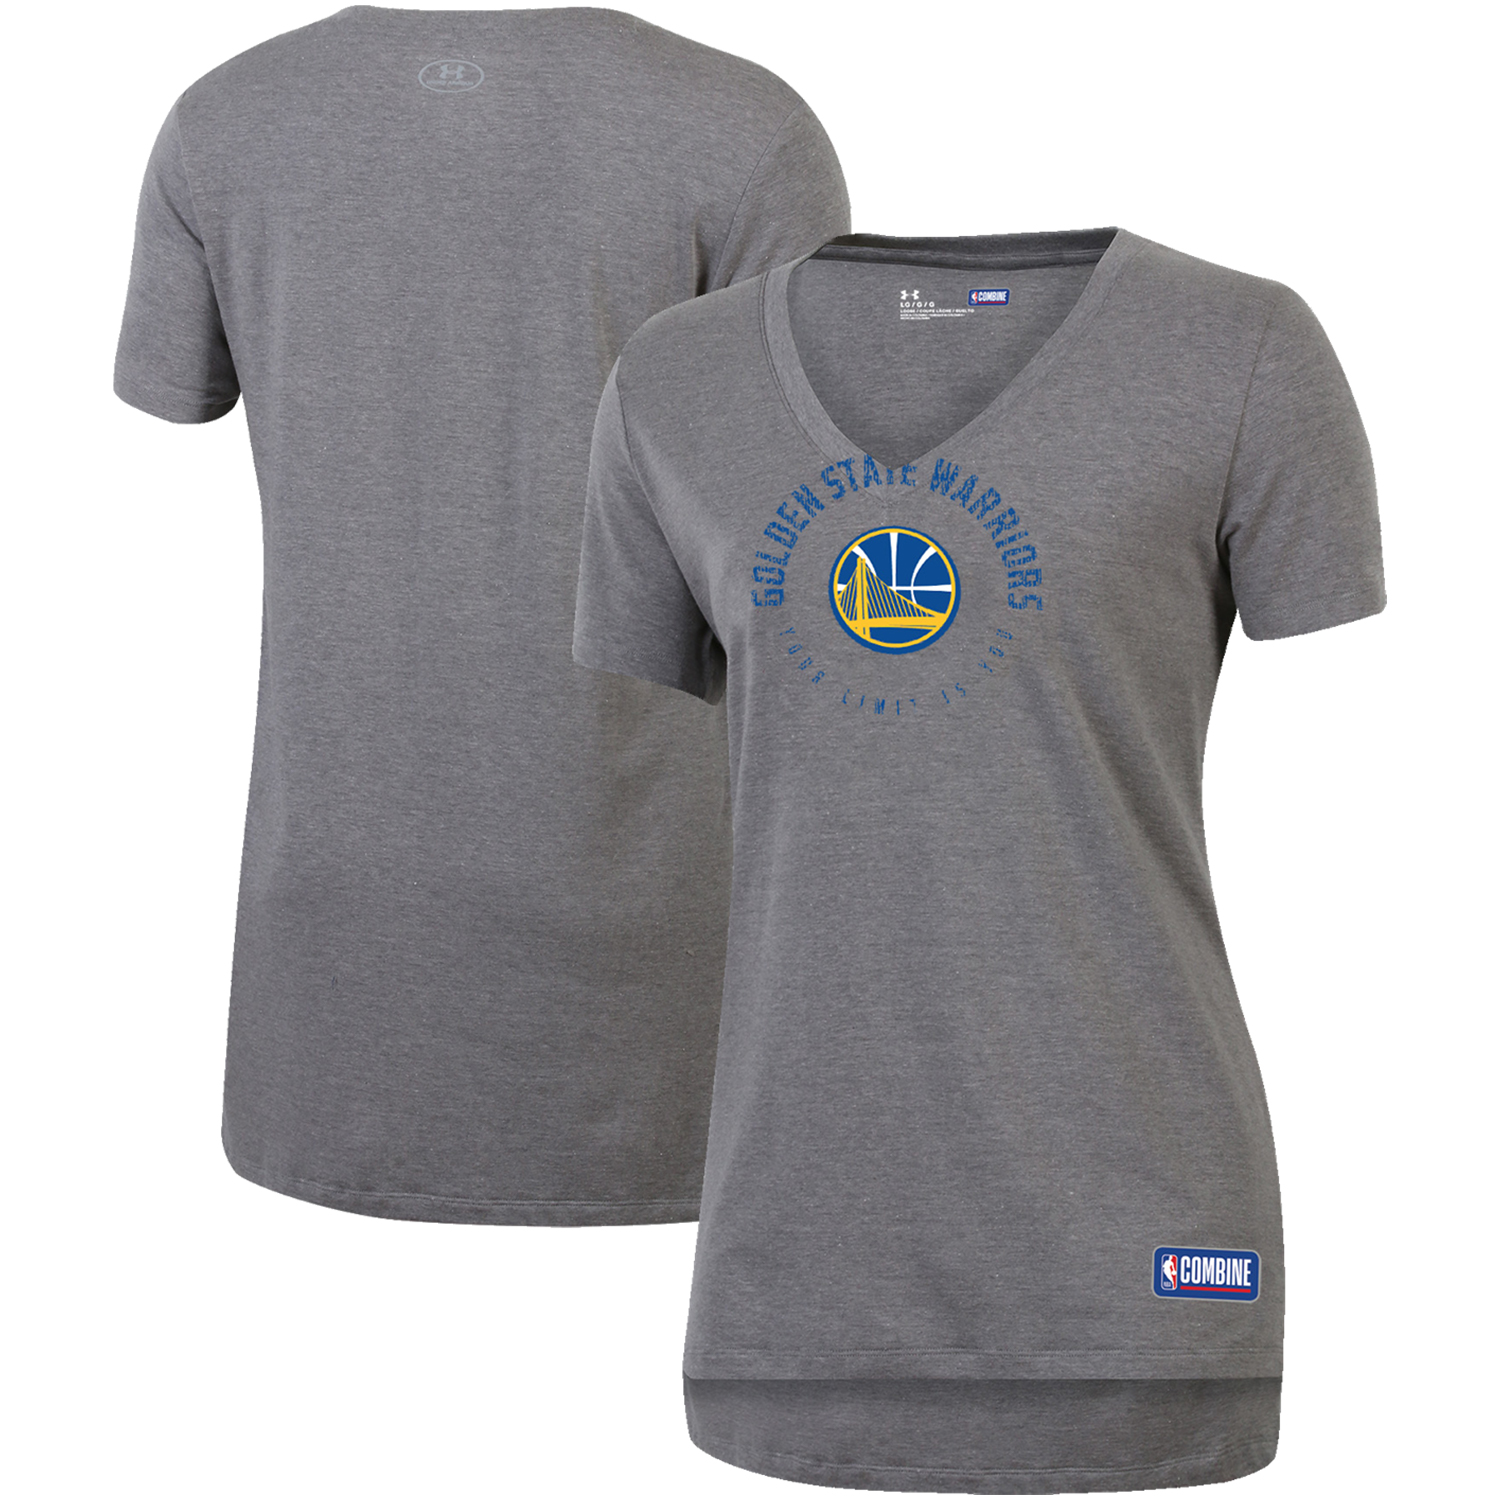 Golden State Warriors Under Armour Women's Combine Authentic Your Limit Is You V-Neck T-Shirt - Heathered Gray